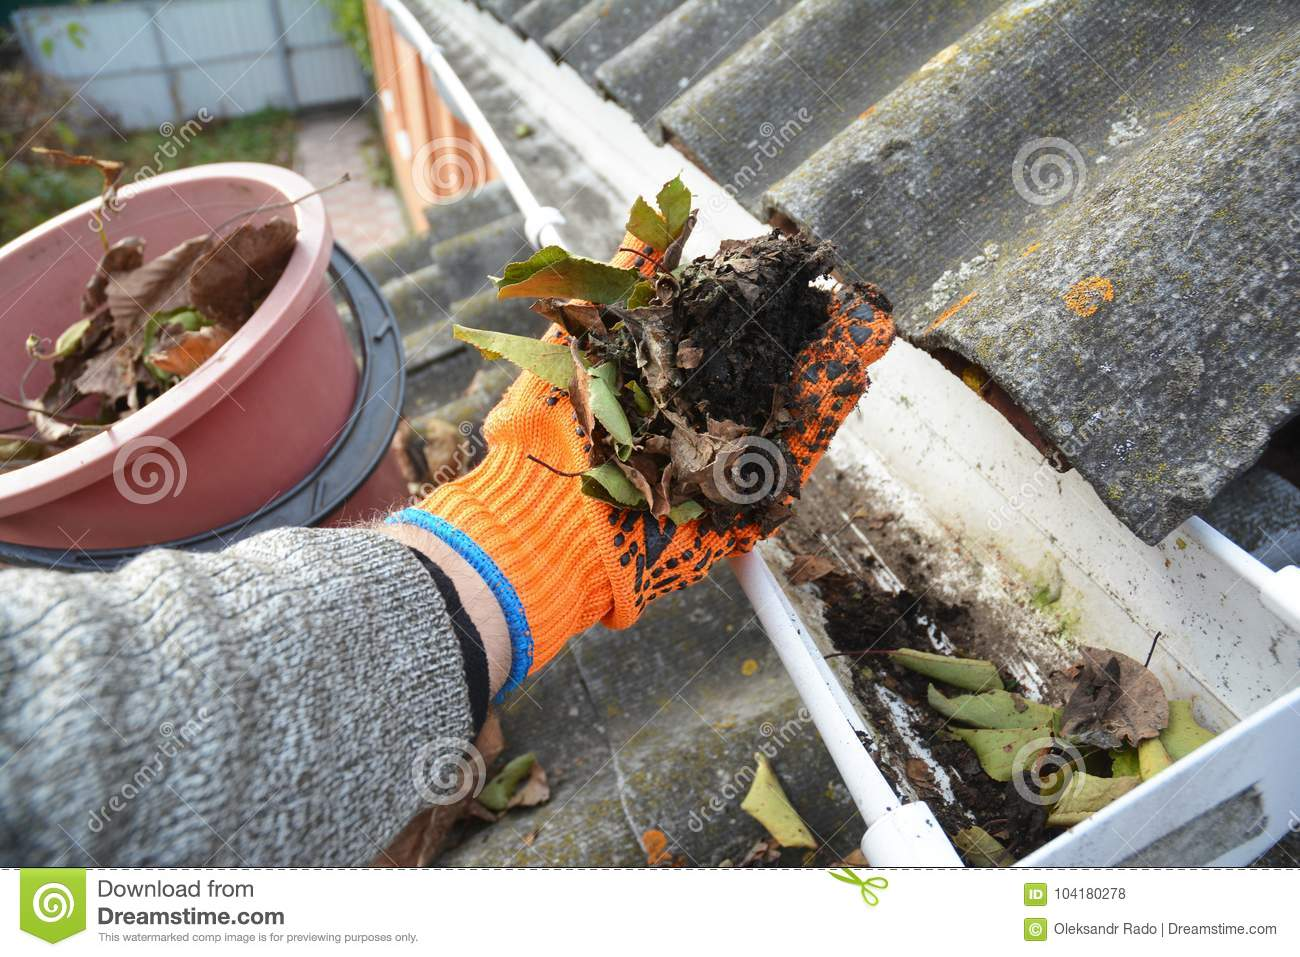 Roof Gutter Cleaning from Leaves in Autumn with hand. Roof Gutter Cleaning Tips.